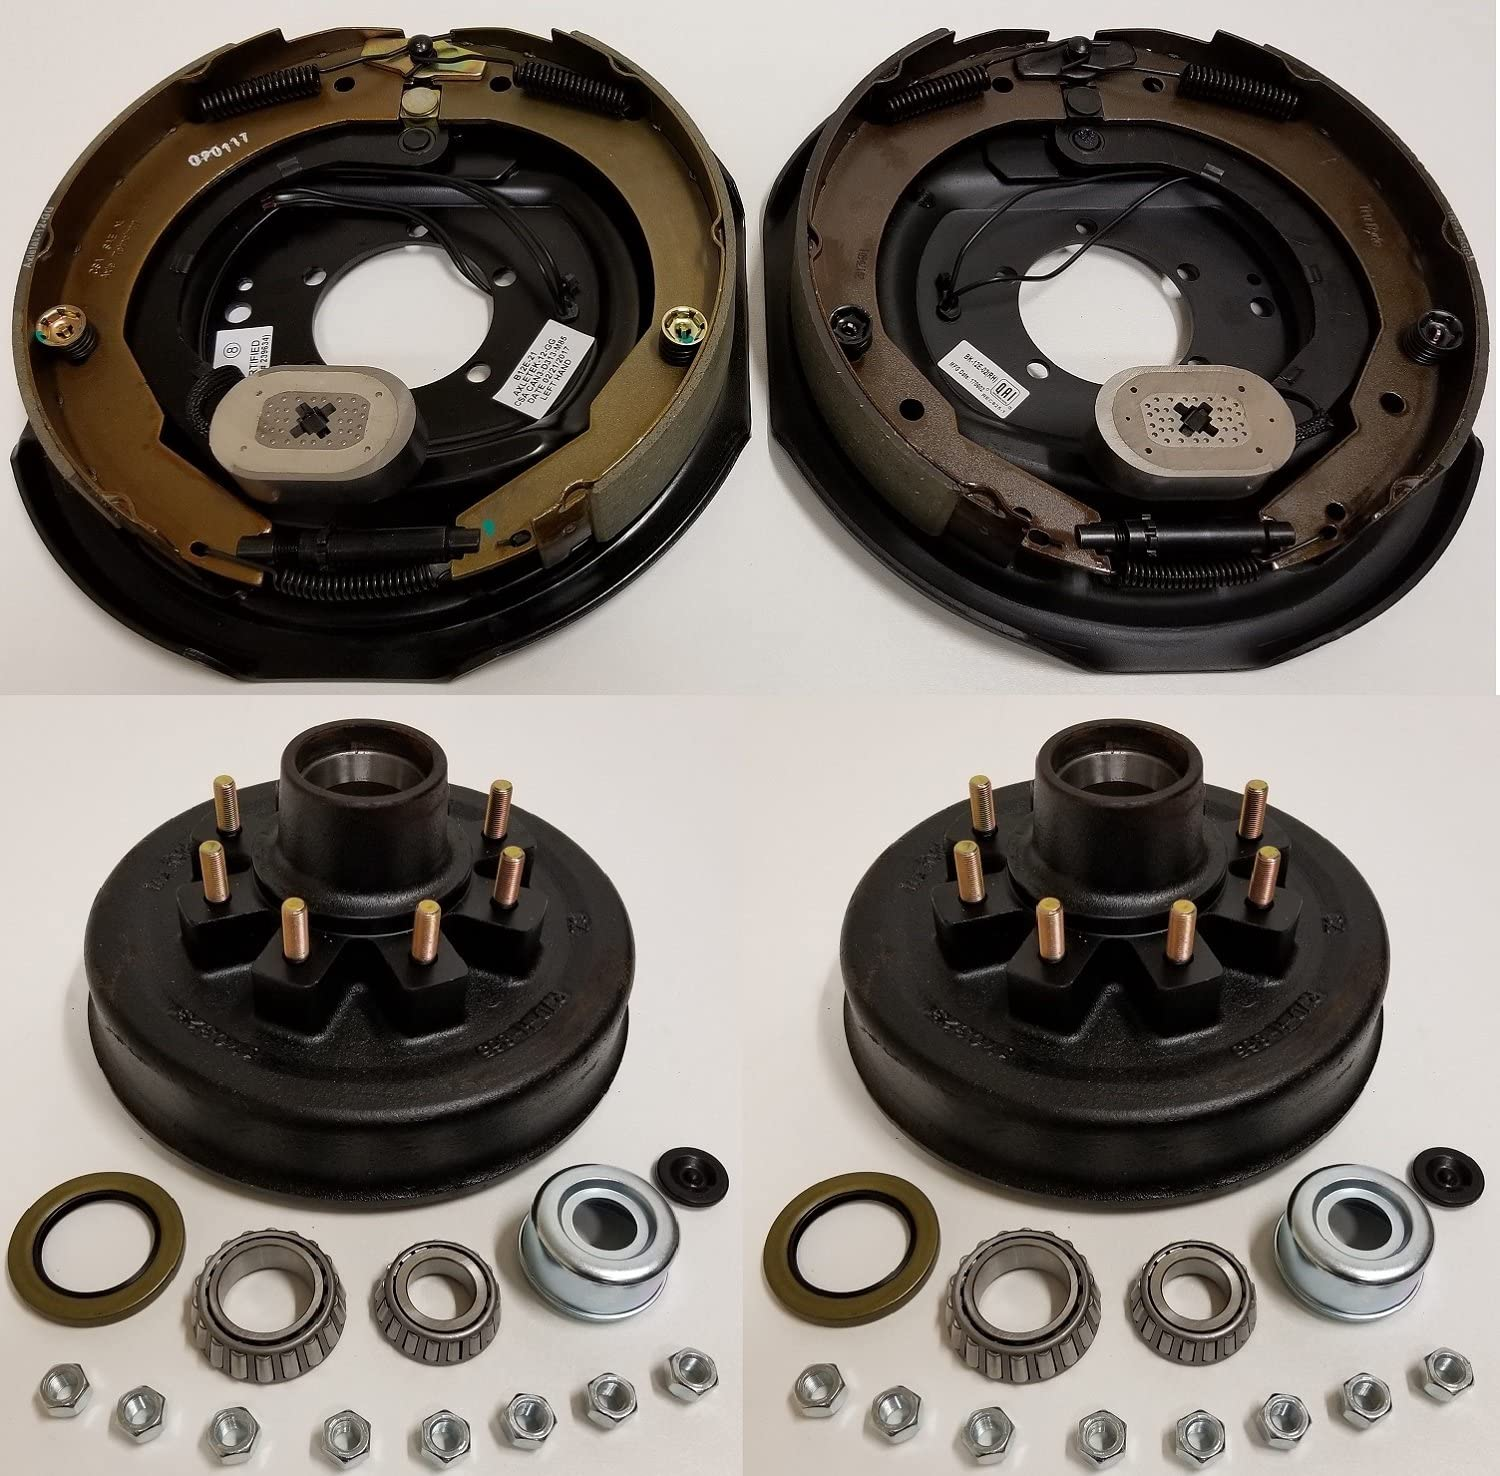 LIBRA Trailer 8 on 6.5 B.C Hub Drum Kits with 12x2 Electric Brakes for 7000 Lbs Axle Heavy Duty Studs Installed